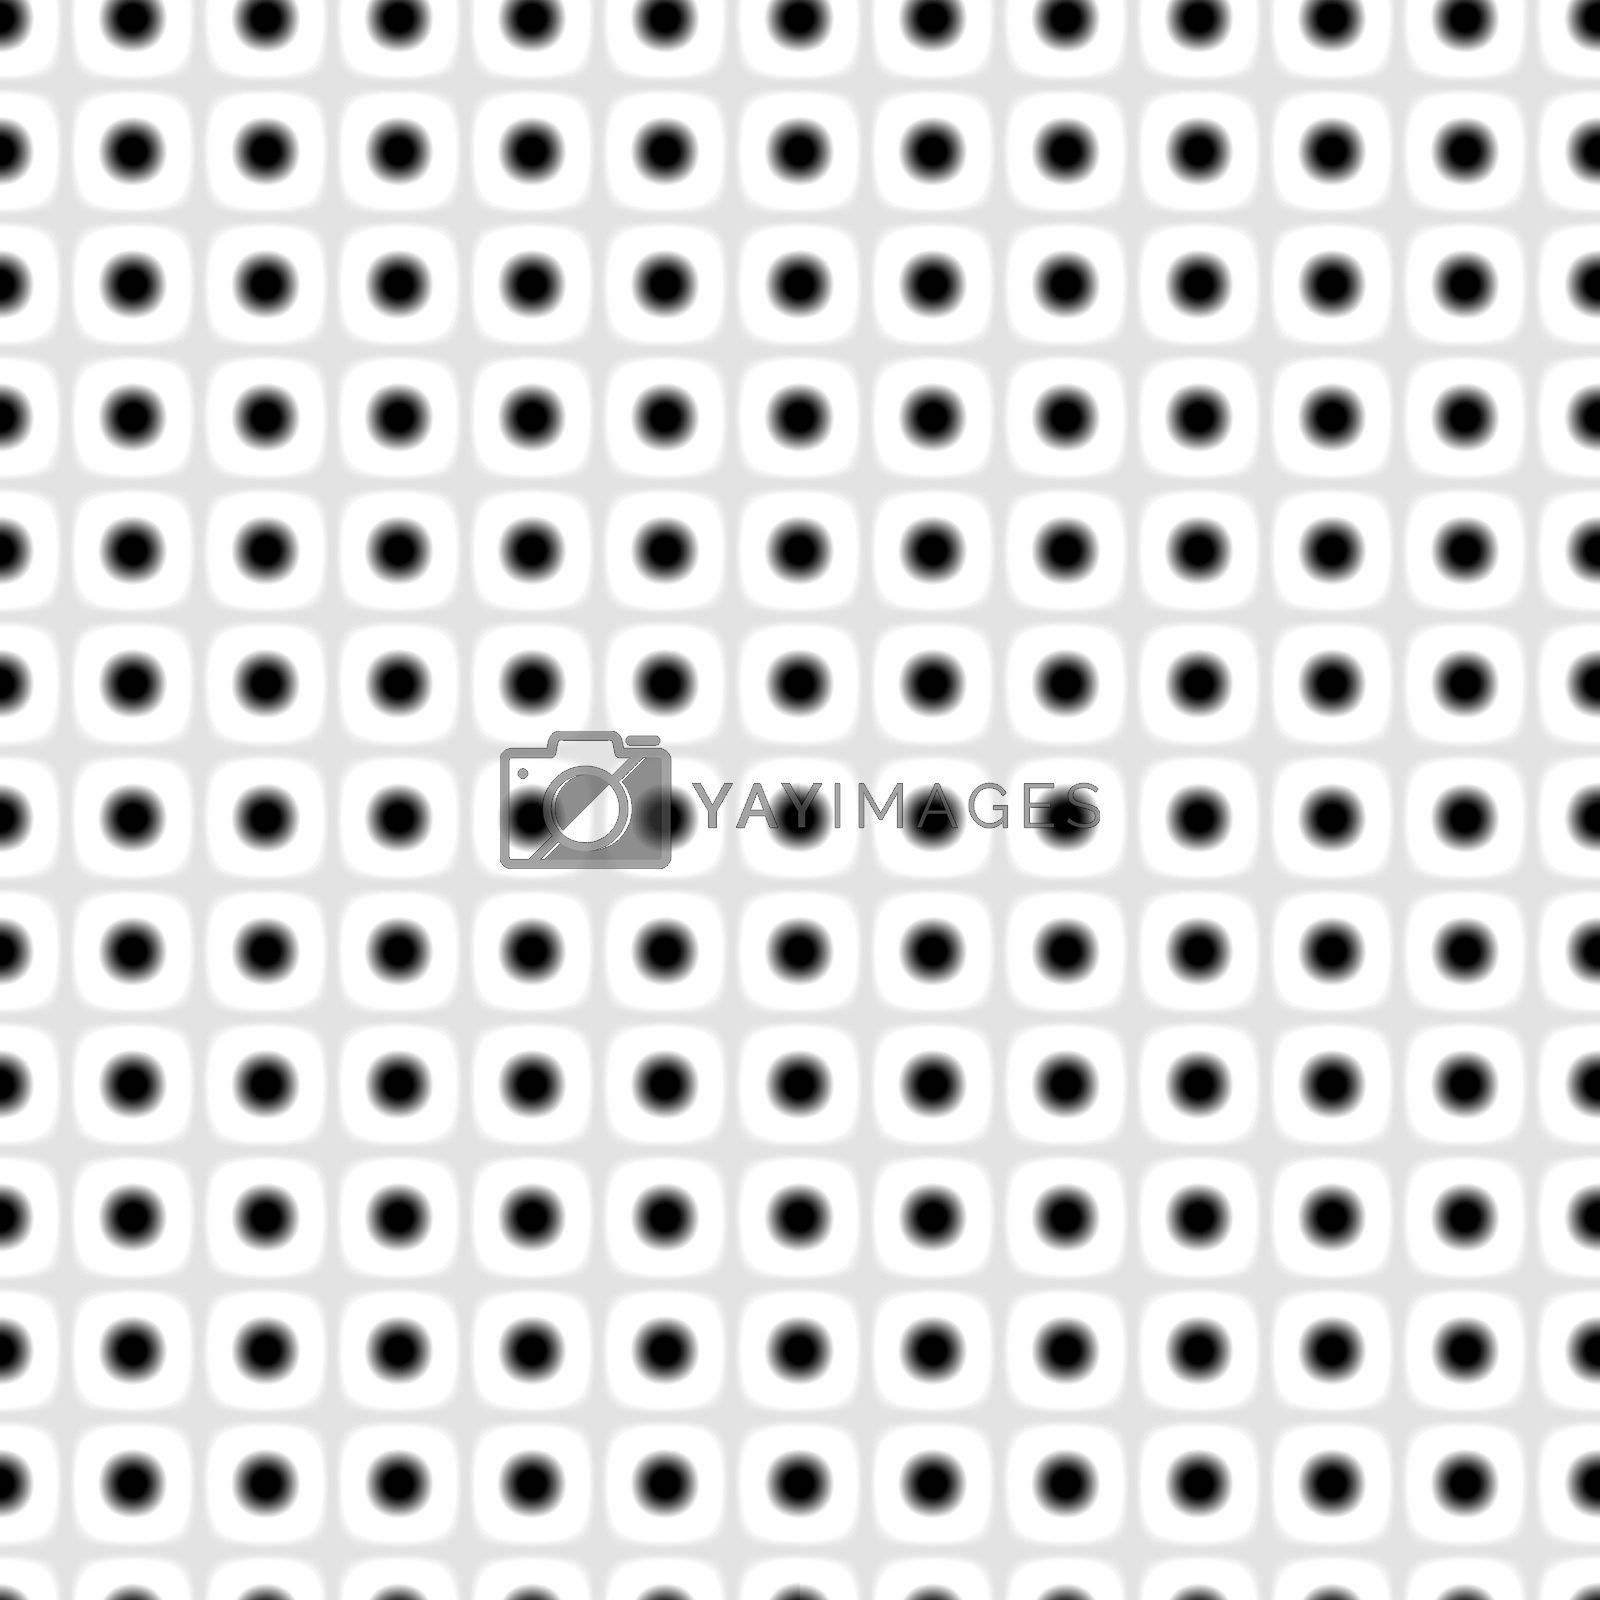 small fractal dots, forming a tiling black-and-white background